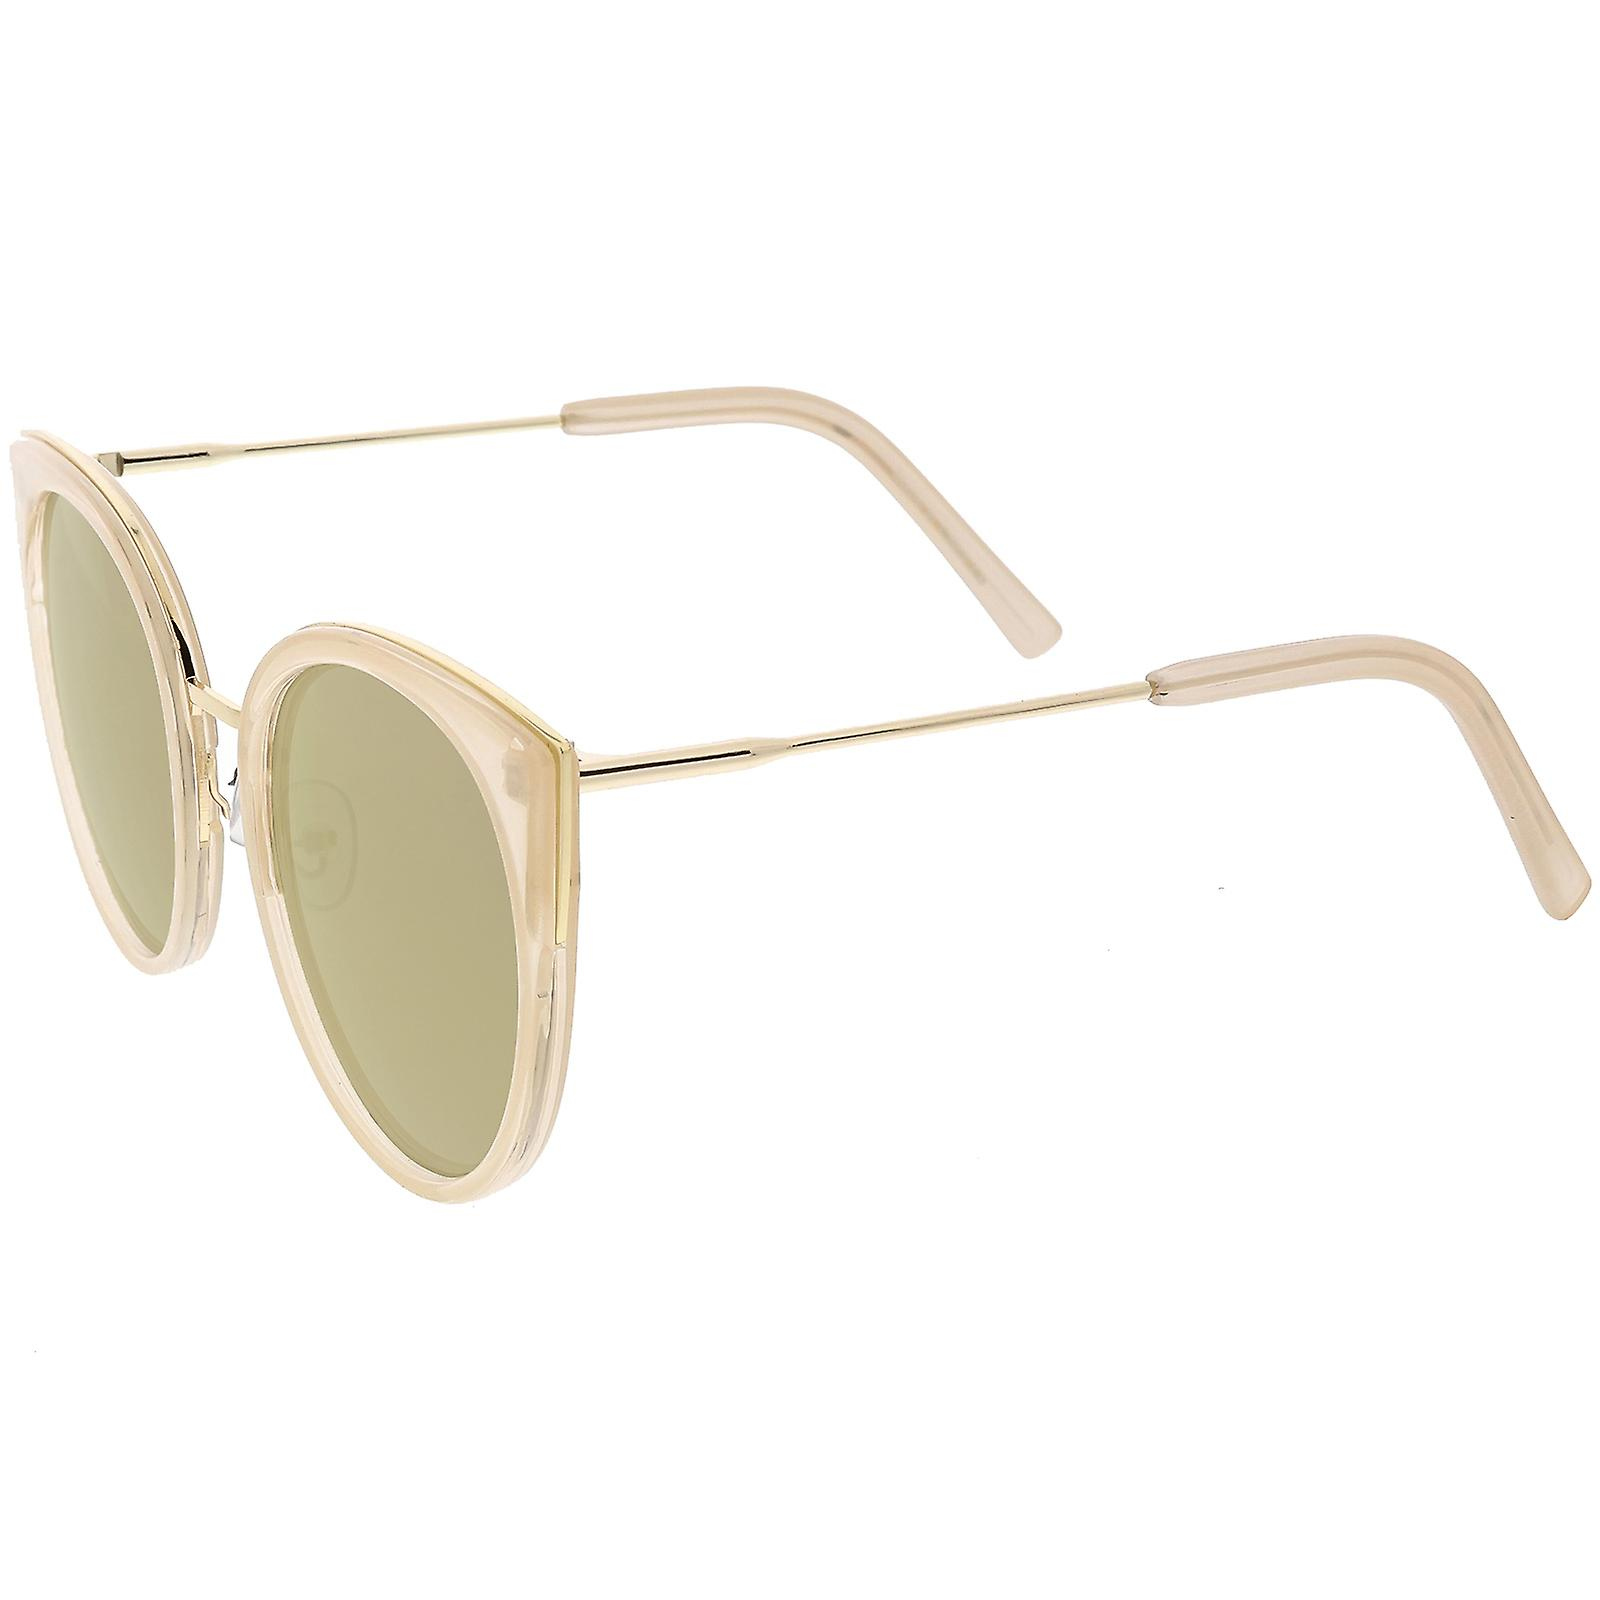 5e4fd392b93c8 Women s Oversize Cat Eye Sunglasses Round Colored Mirror Lens 55mm ...